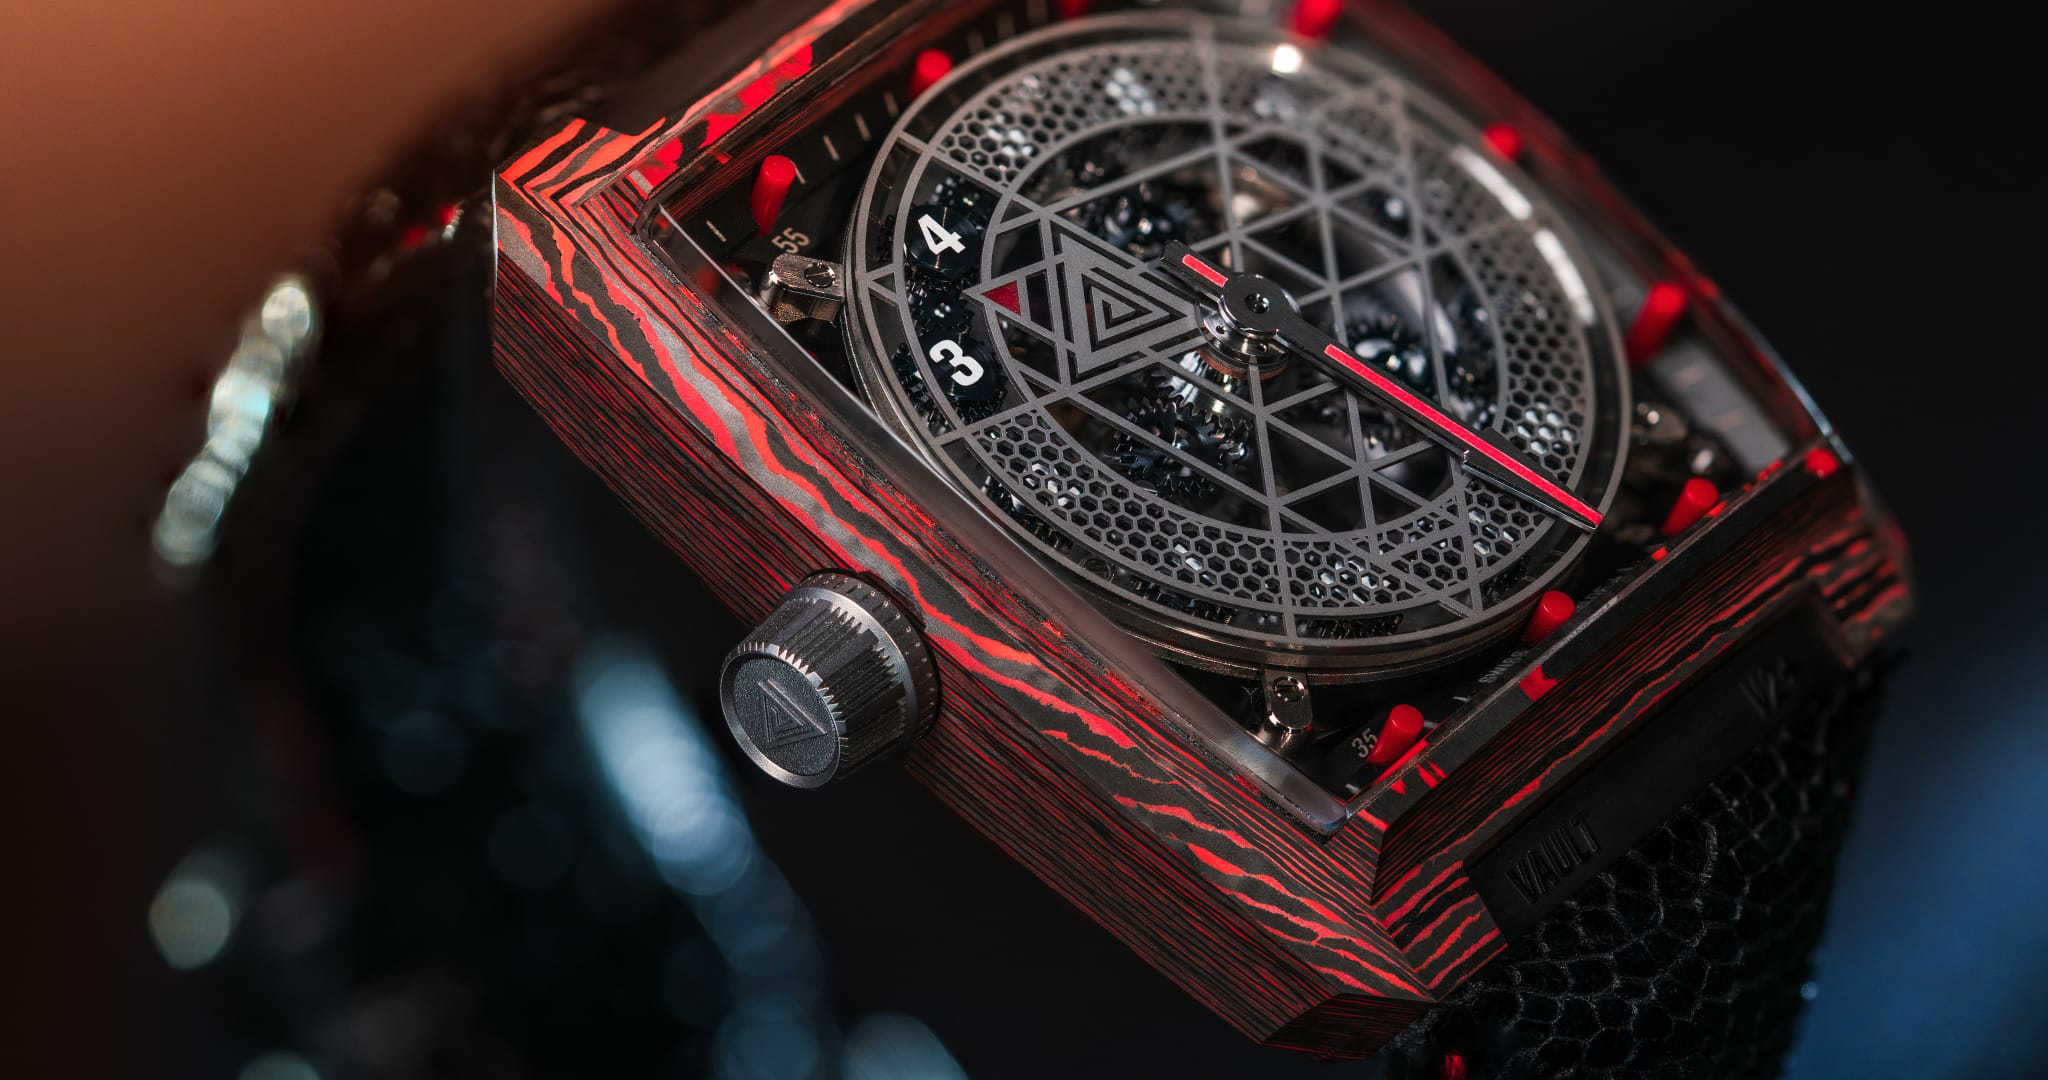 Vault Swiss V2 + watch with carbon composite case